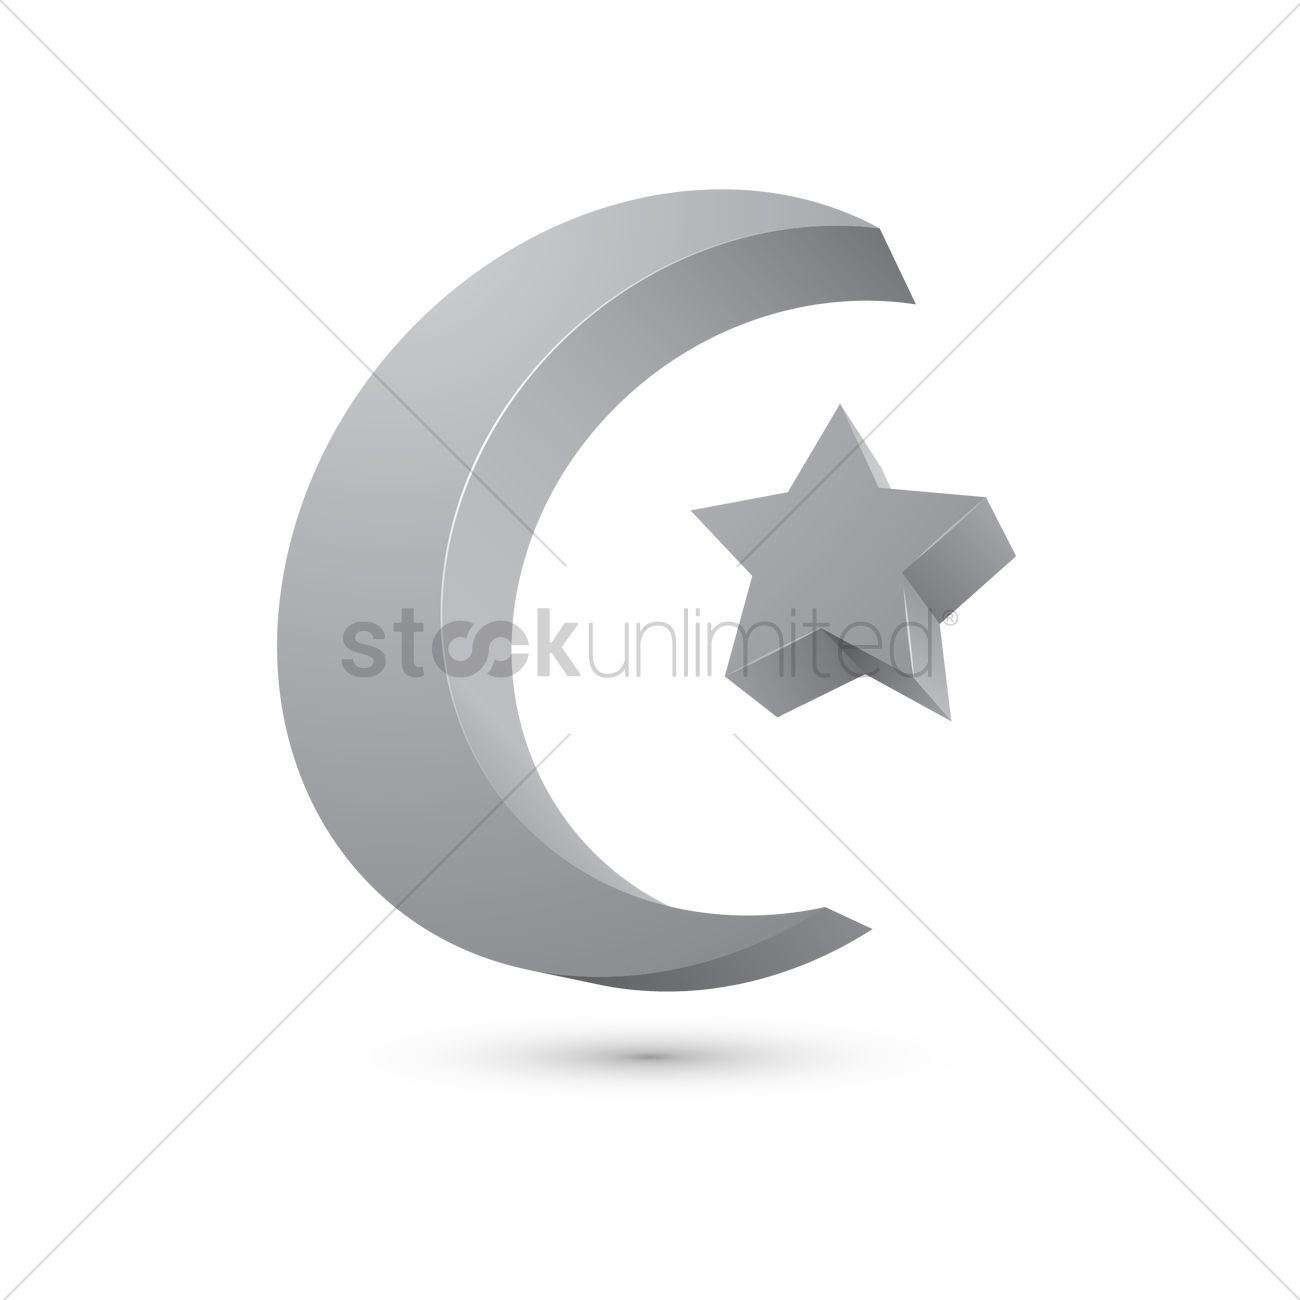 Symbol Of Islam Vector Image 1996930 Stockunlimited